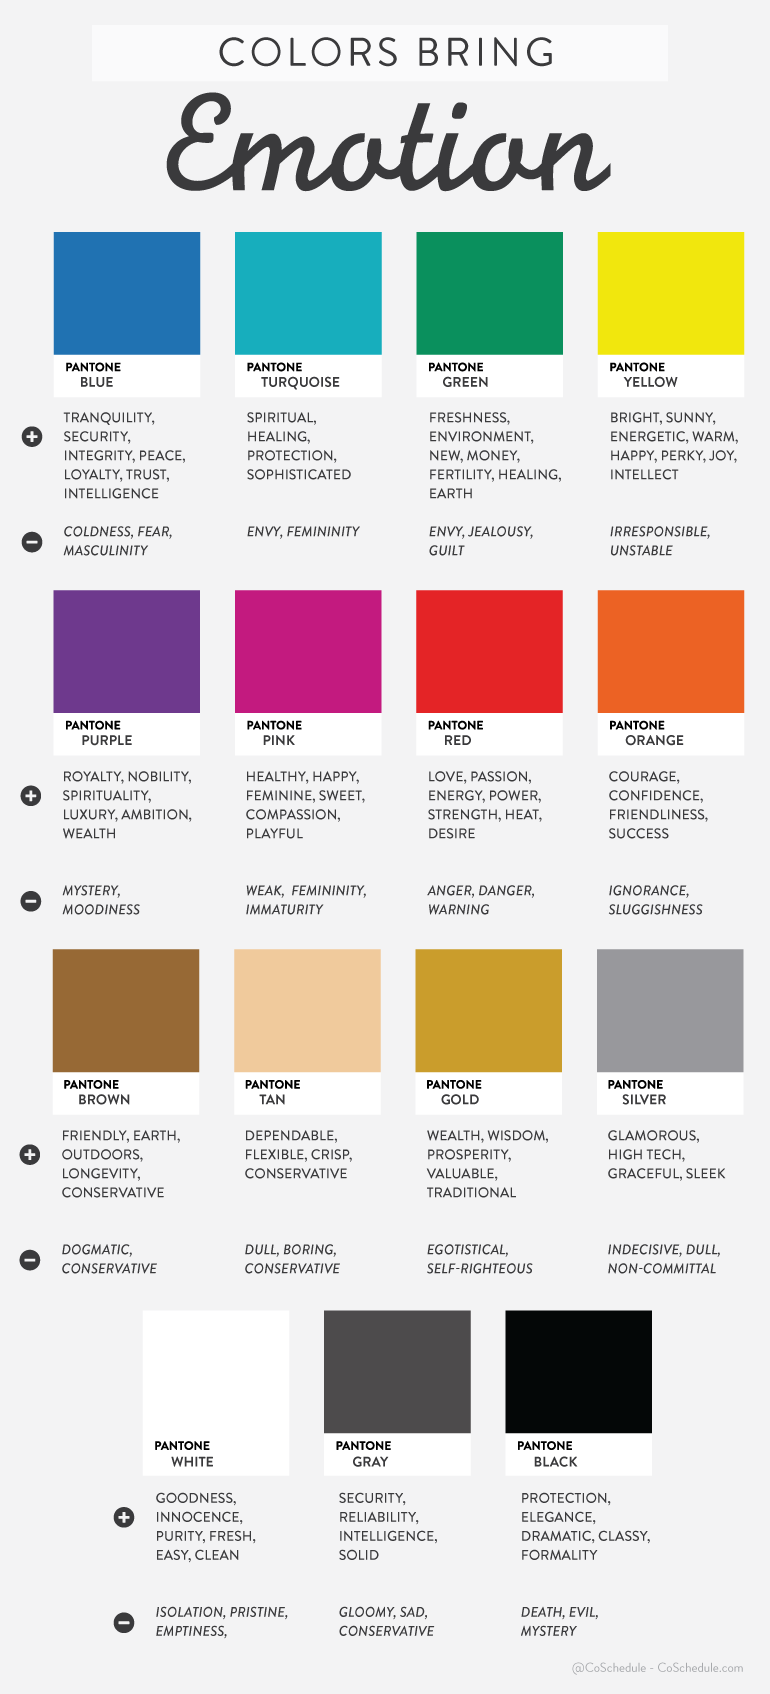 The Psychology of Colors: How Does Color Affect your